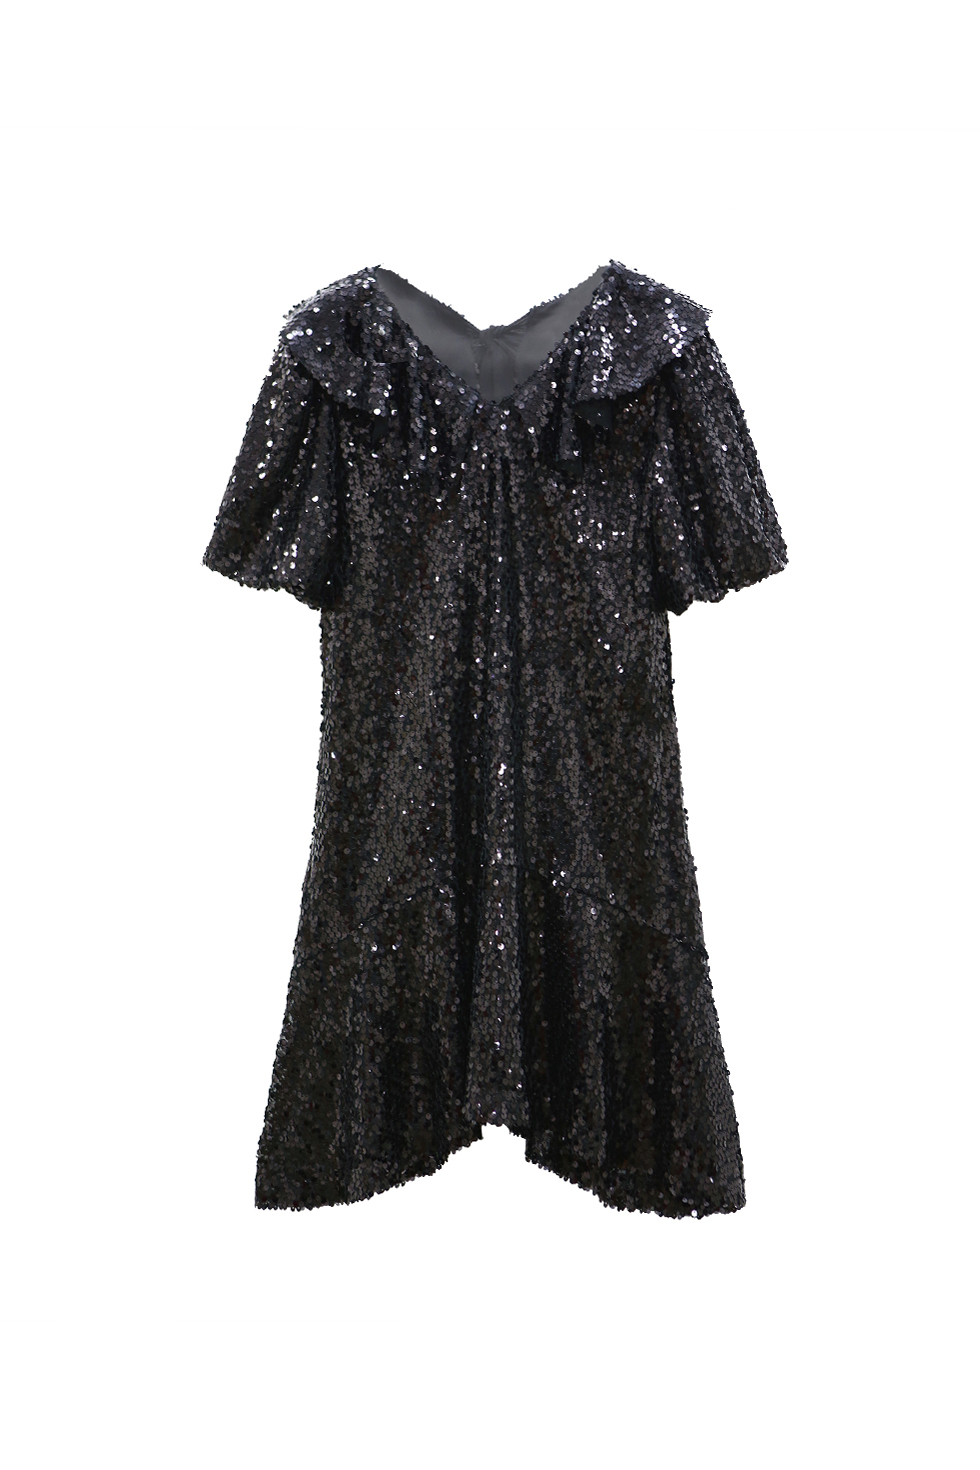 SEQUINED MINI DRESS - BLACK